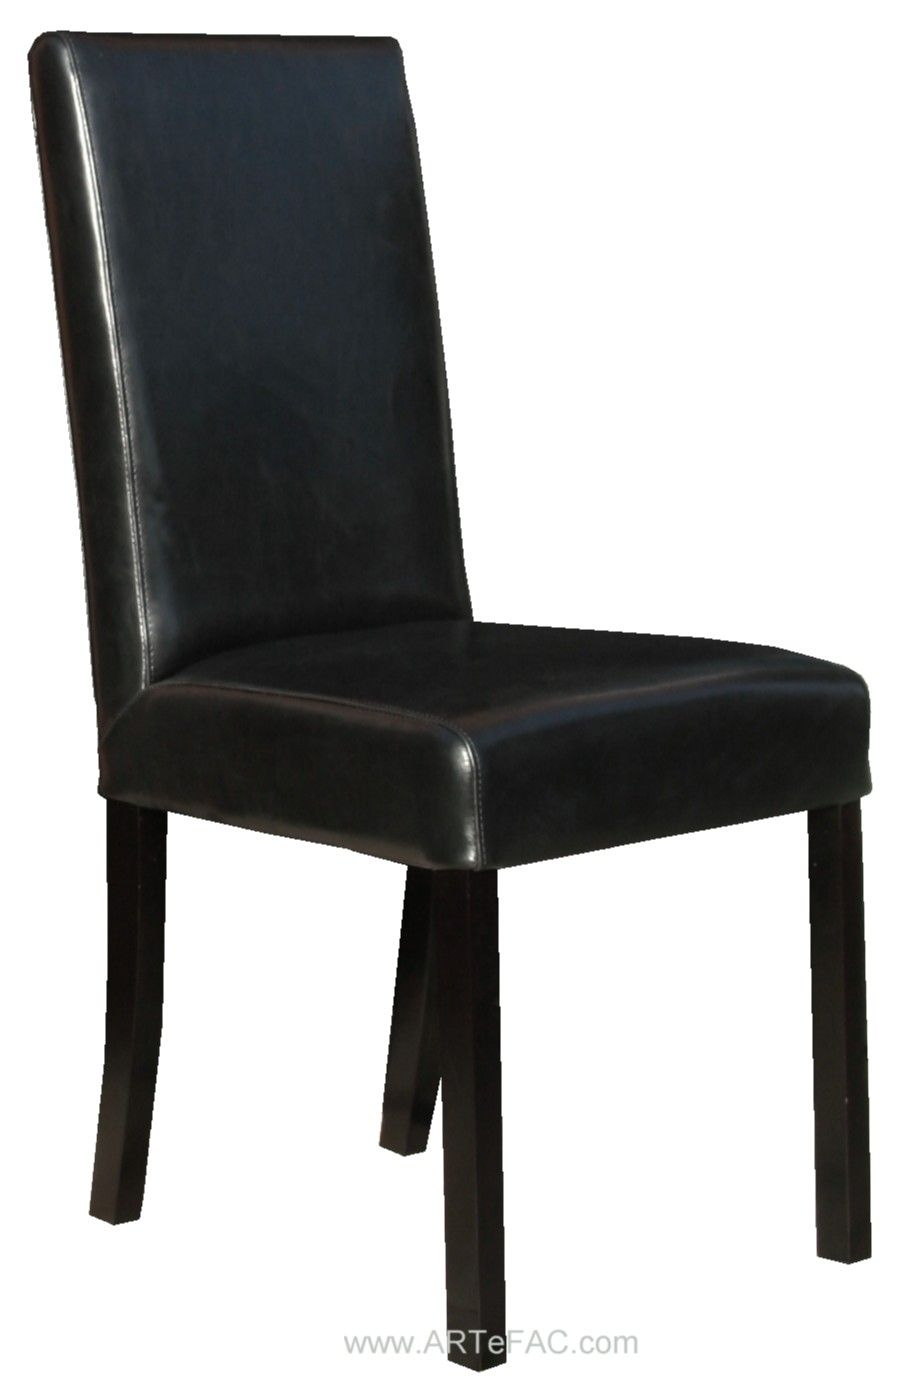 Black dining chairs black leather dining room chairs and leather black dining chairs black leather dining room chairs and leather bar stools by artefac dzzzfo